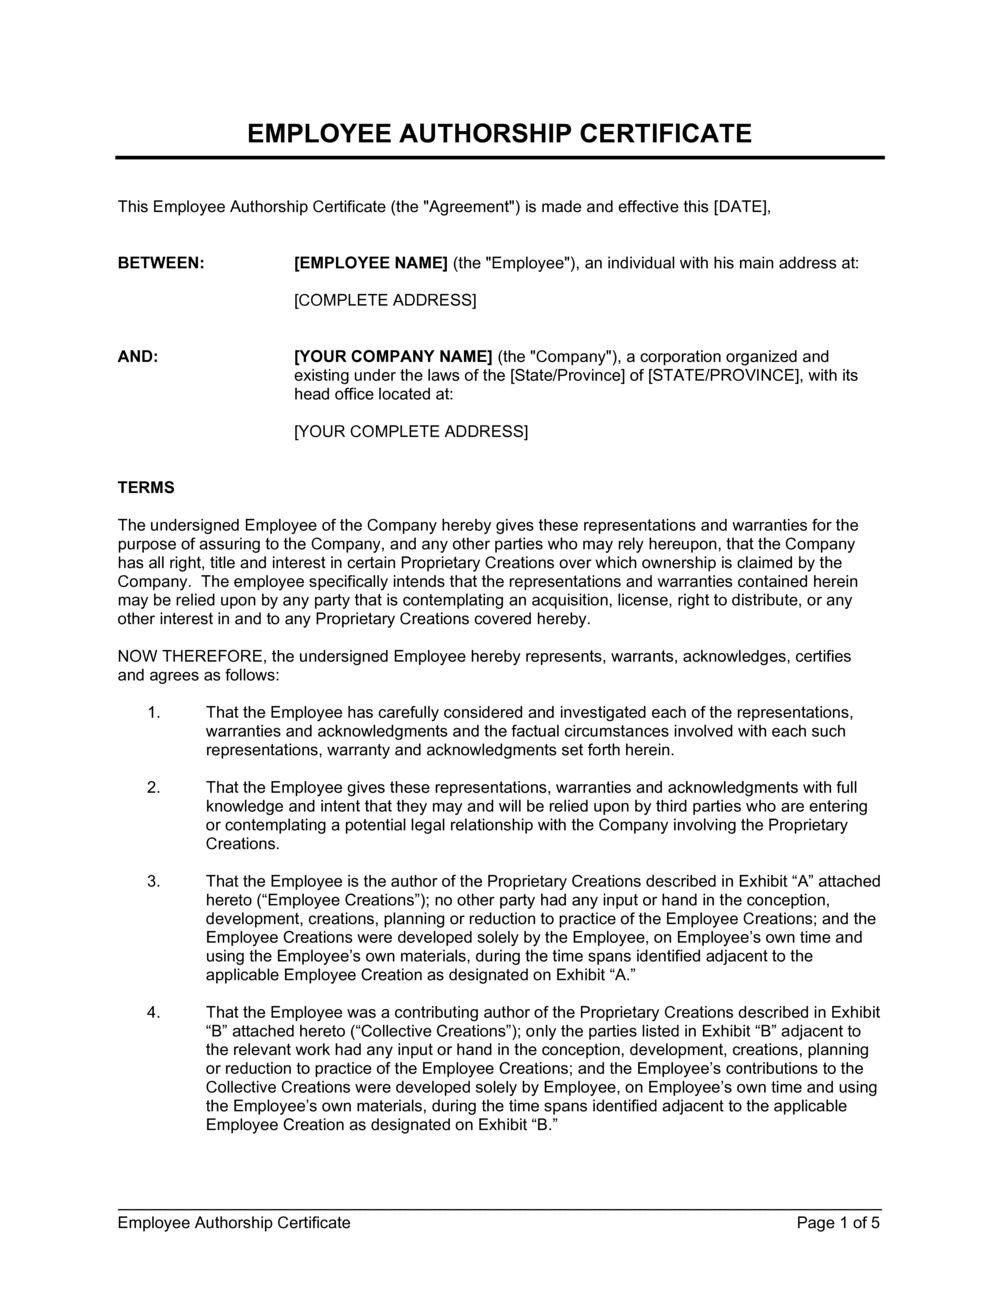 Business-in-a-Box's Employee Authorship Certificate Template